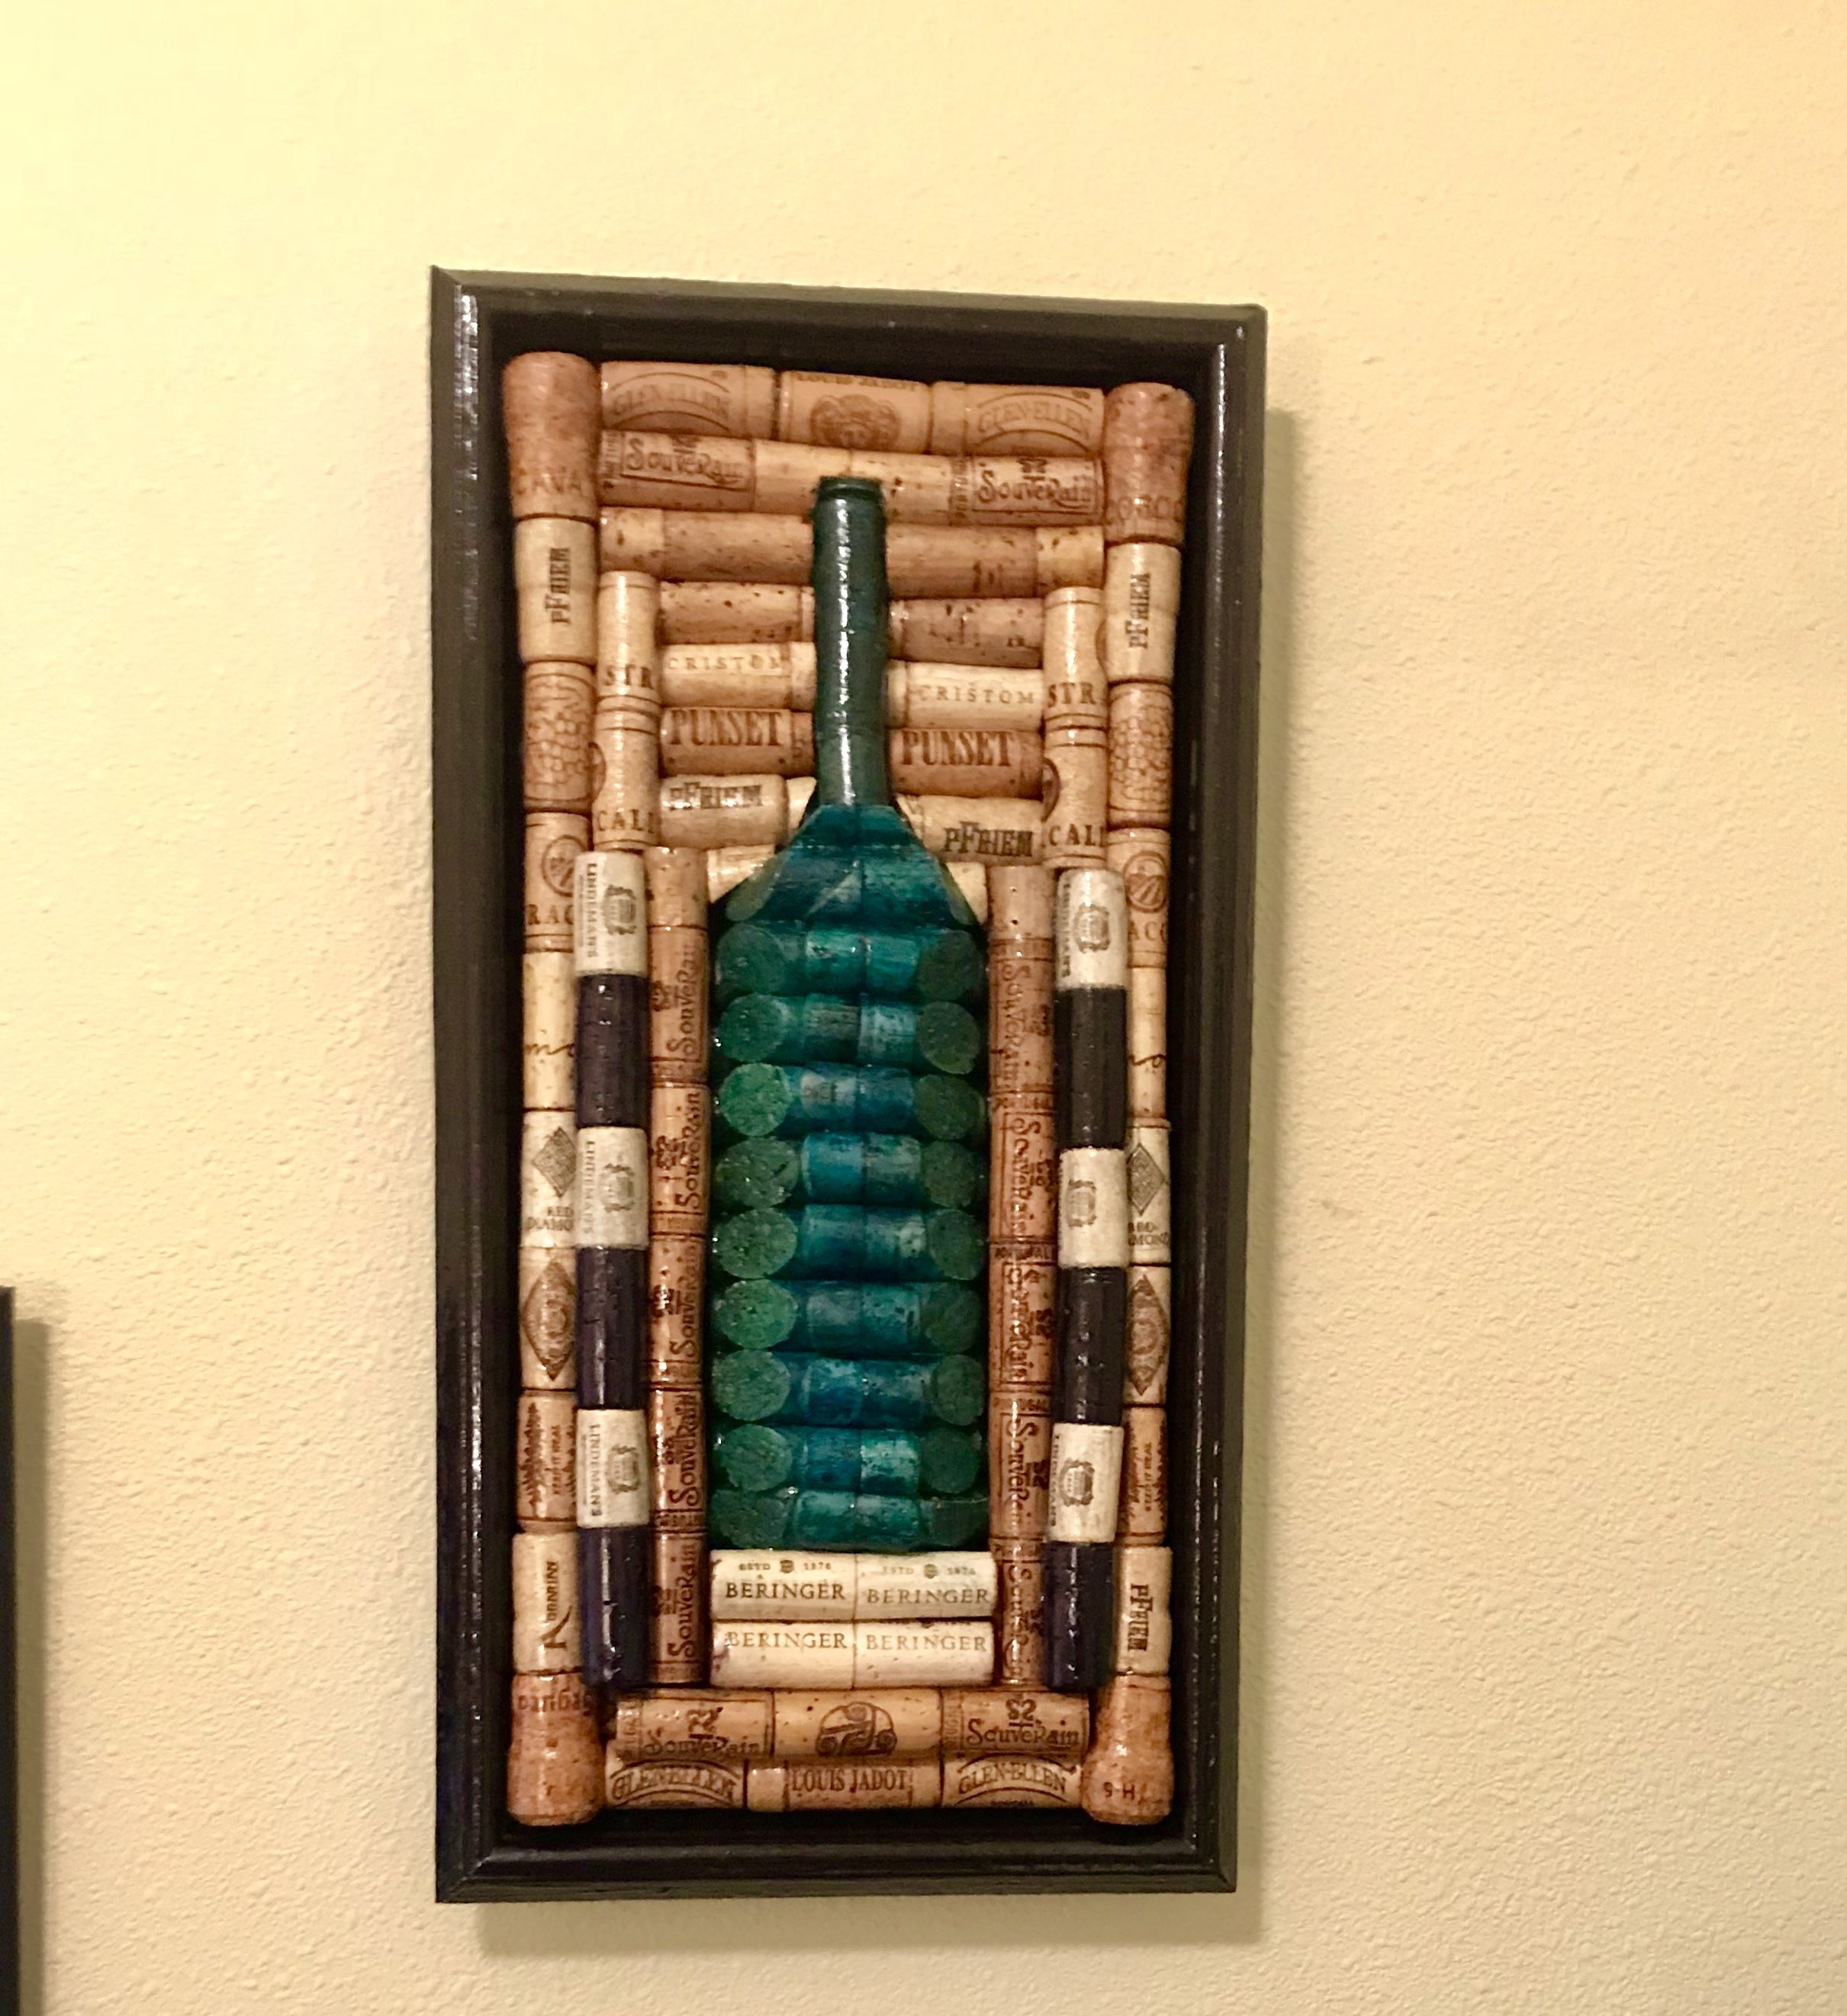 Famous Wine Cork Holder Wall Decor Art Frieze - Art & Wall Decor ...